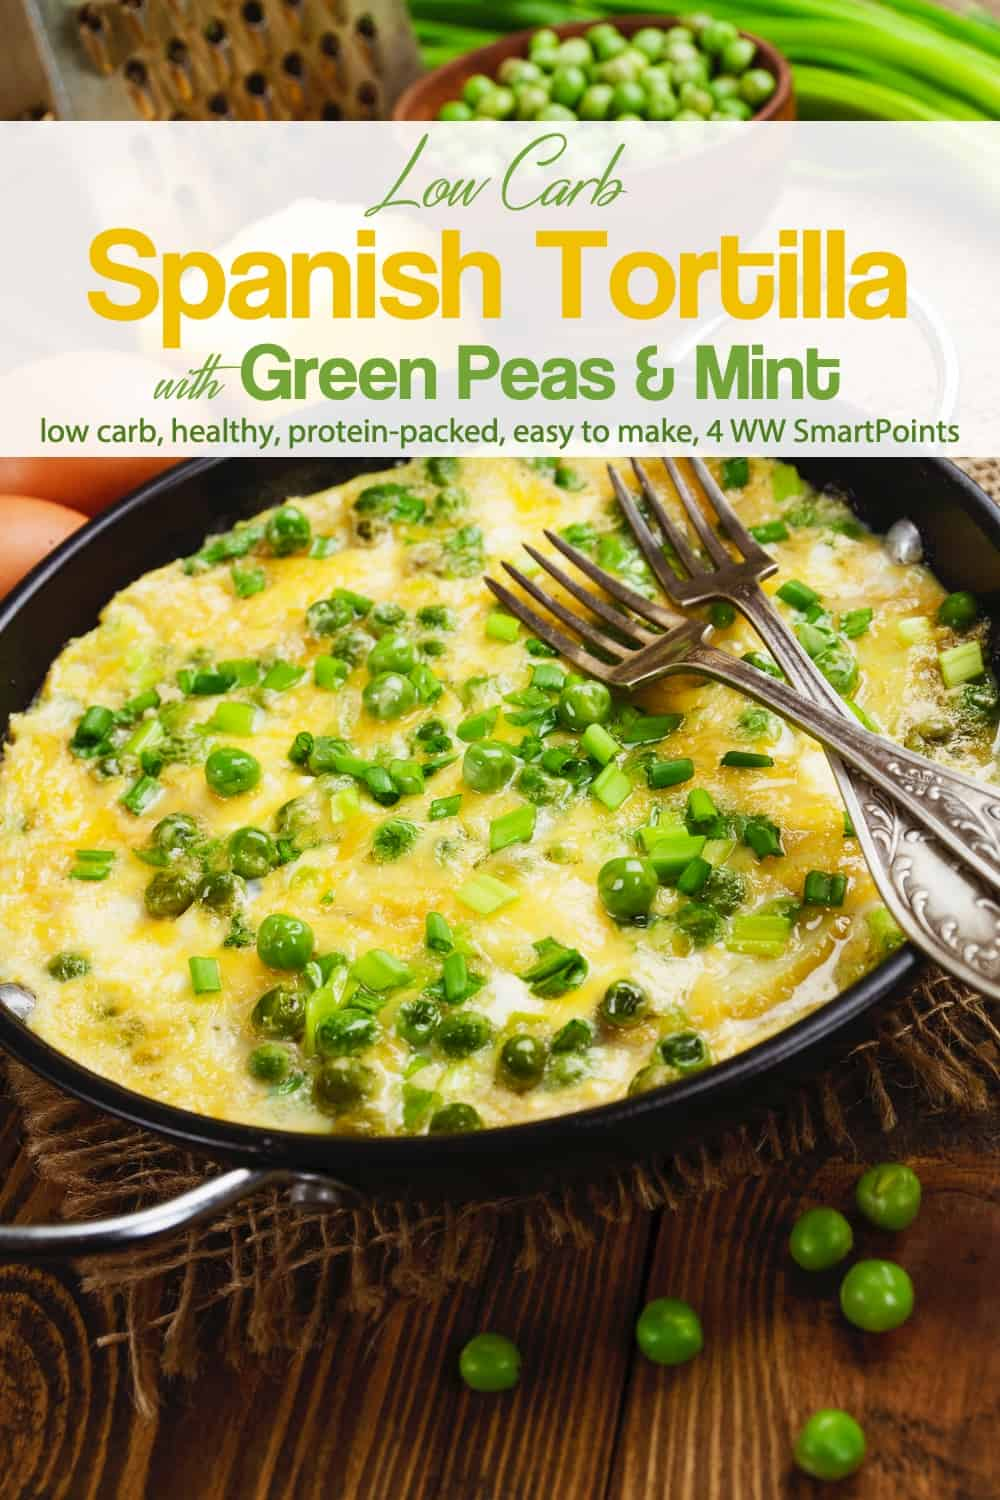 Plain non-fat Icelandic style yogurt is a good addition to this Low Carb Spanish tortilla/omelet as it adds a lot of richness without guilt. Serve with a small green salad with a complete lunch or light dinner! #spanishtortilla #spanishomelet #omelet #omelette #eggs #easyhealthyrecipes